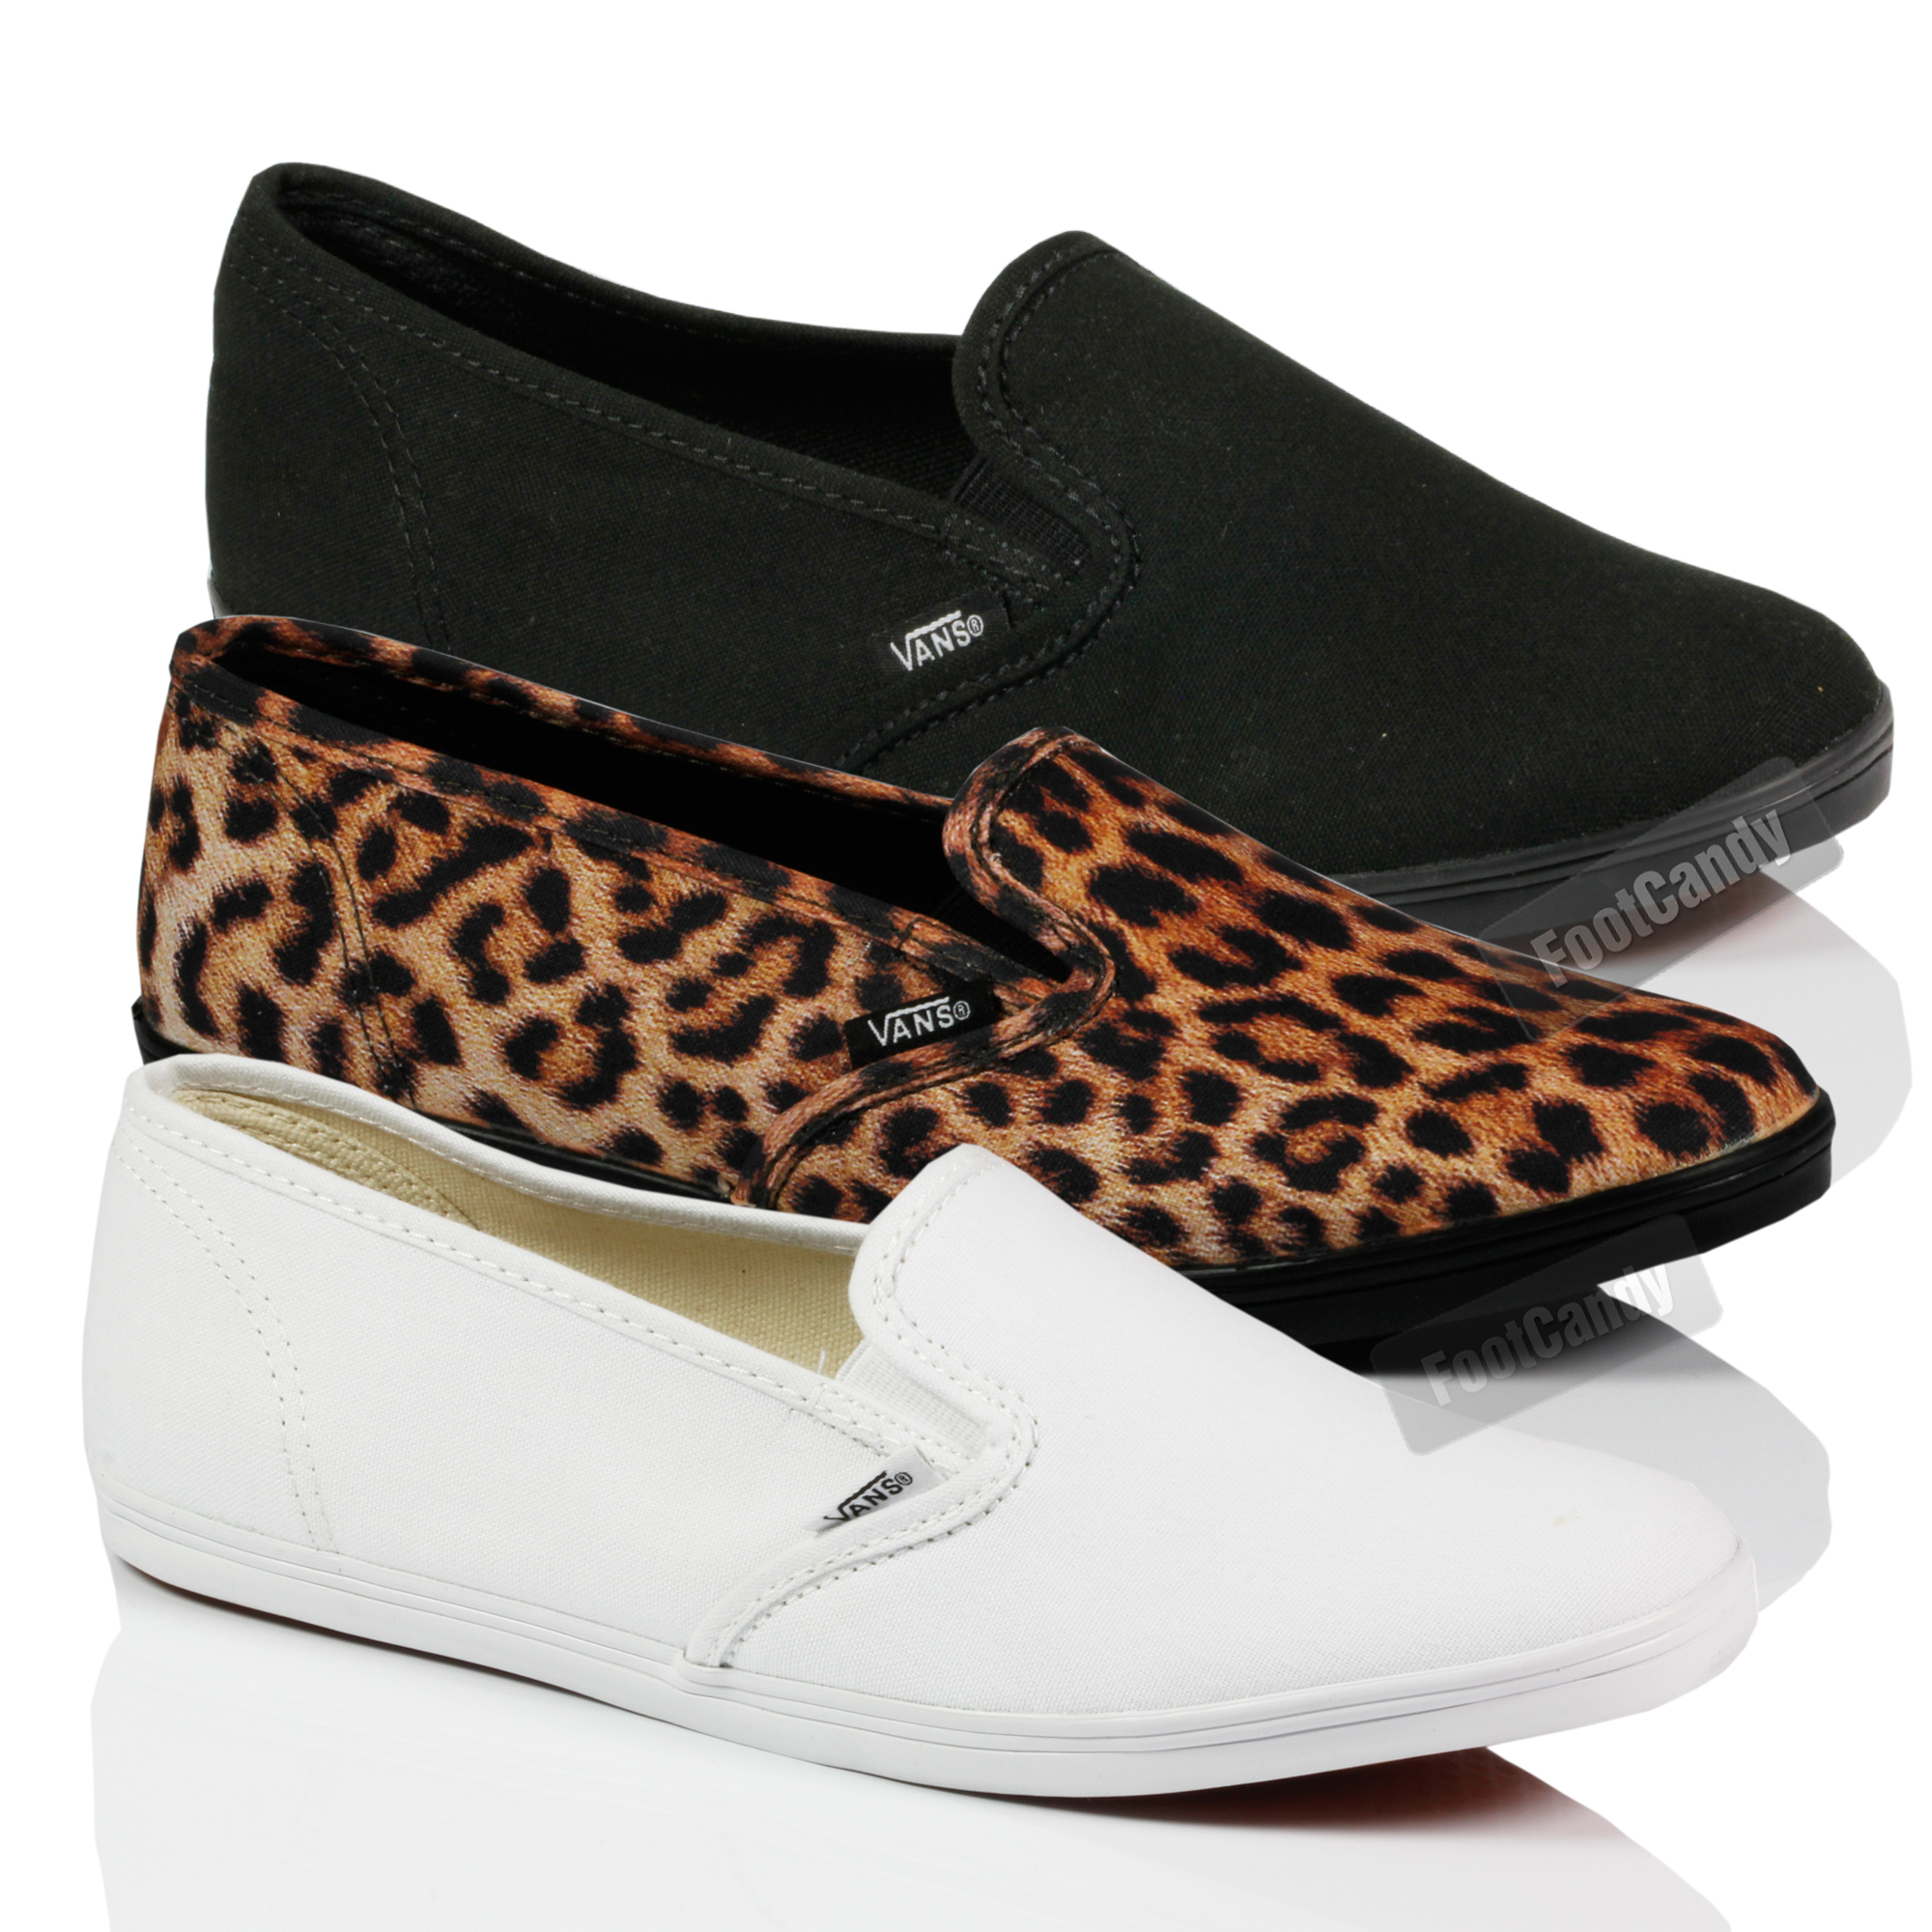 VANS-CLASSIC-LO-PROFILE-SLIP-ON-SKATE-GUSSET-DRY-LEX-FLAT-TRAINERS-SHOES-SIZE